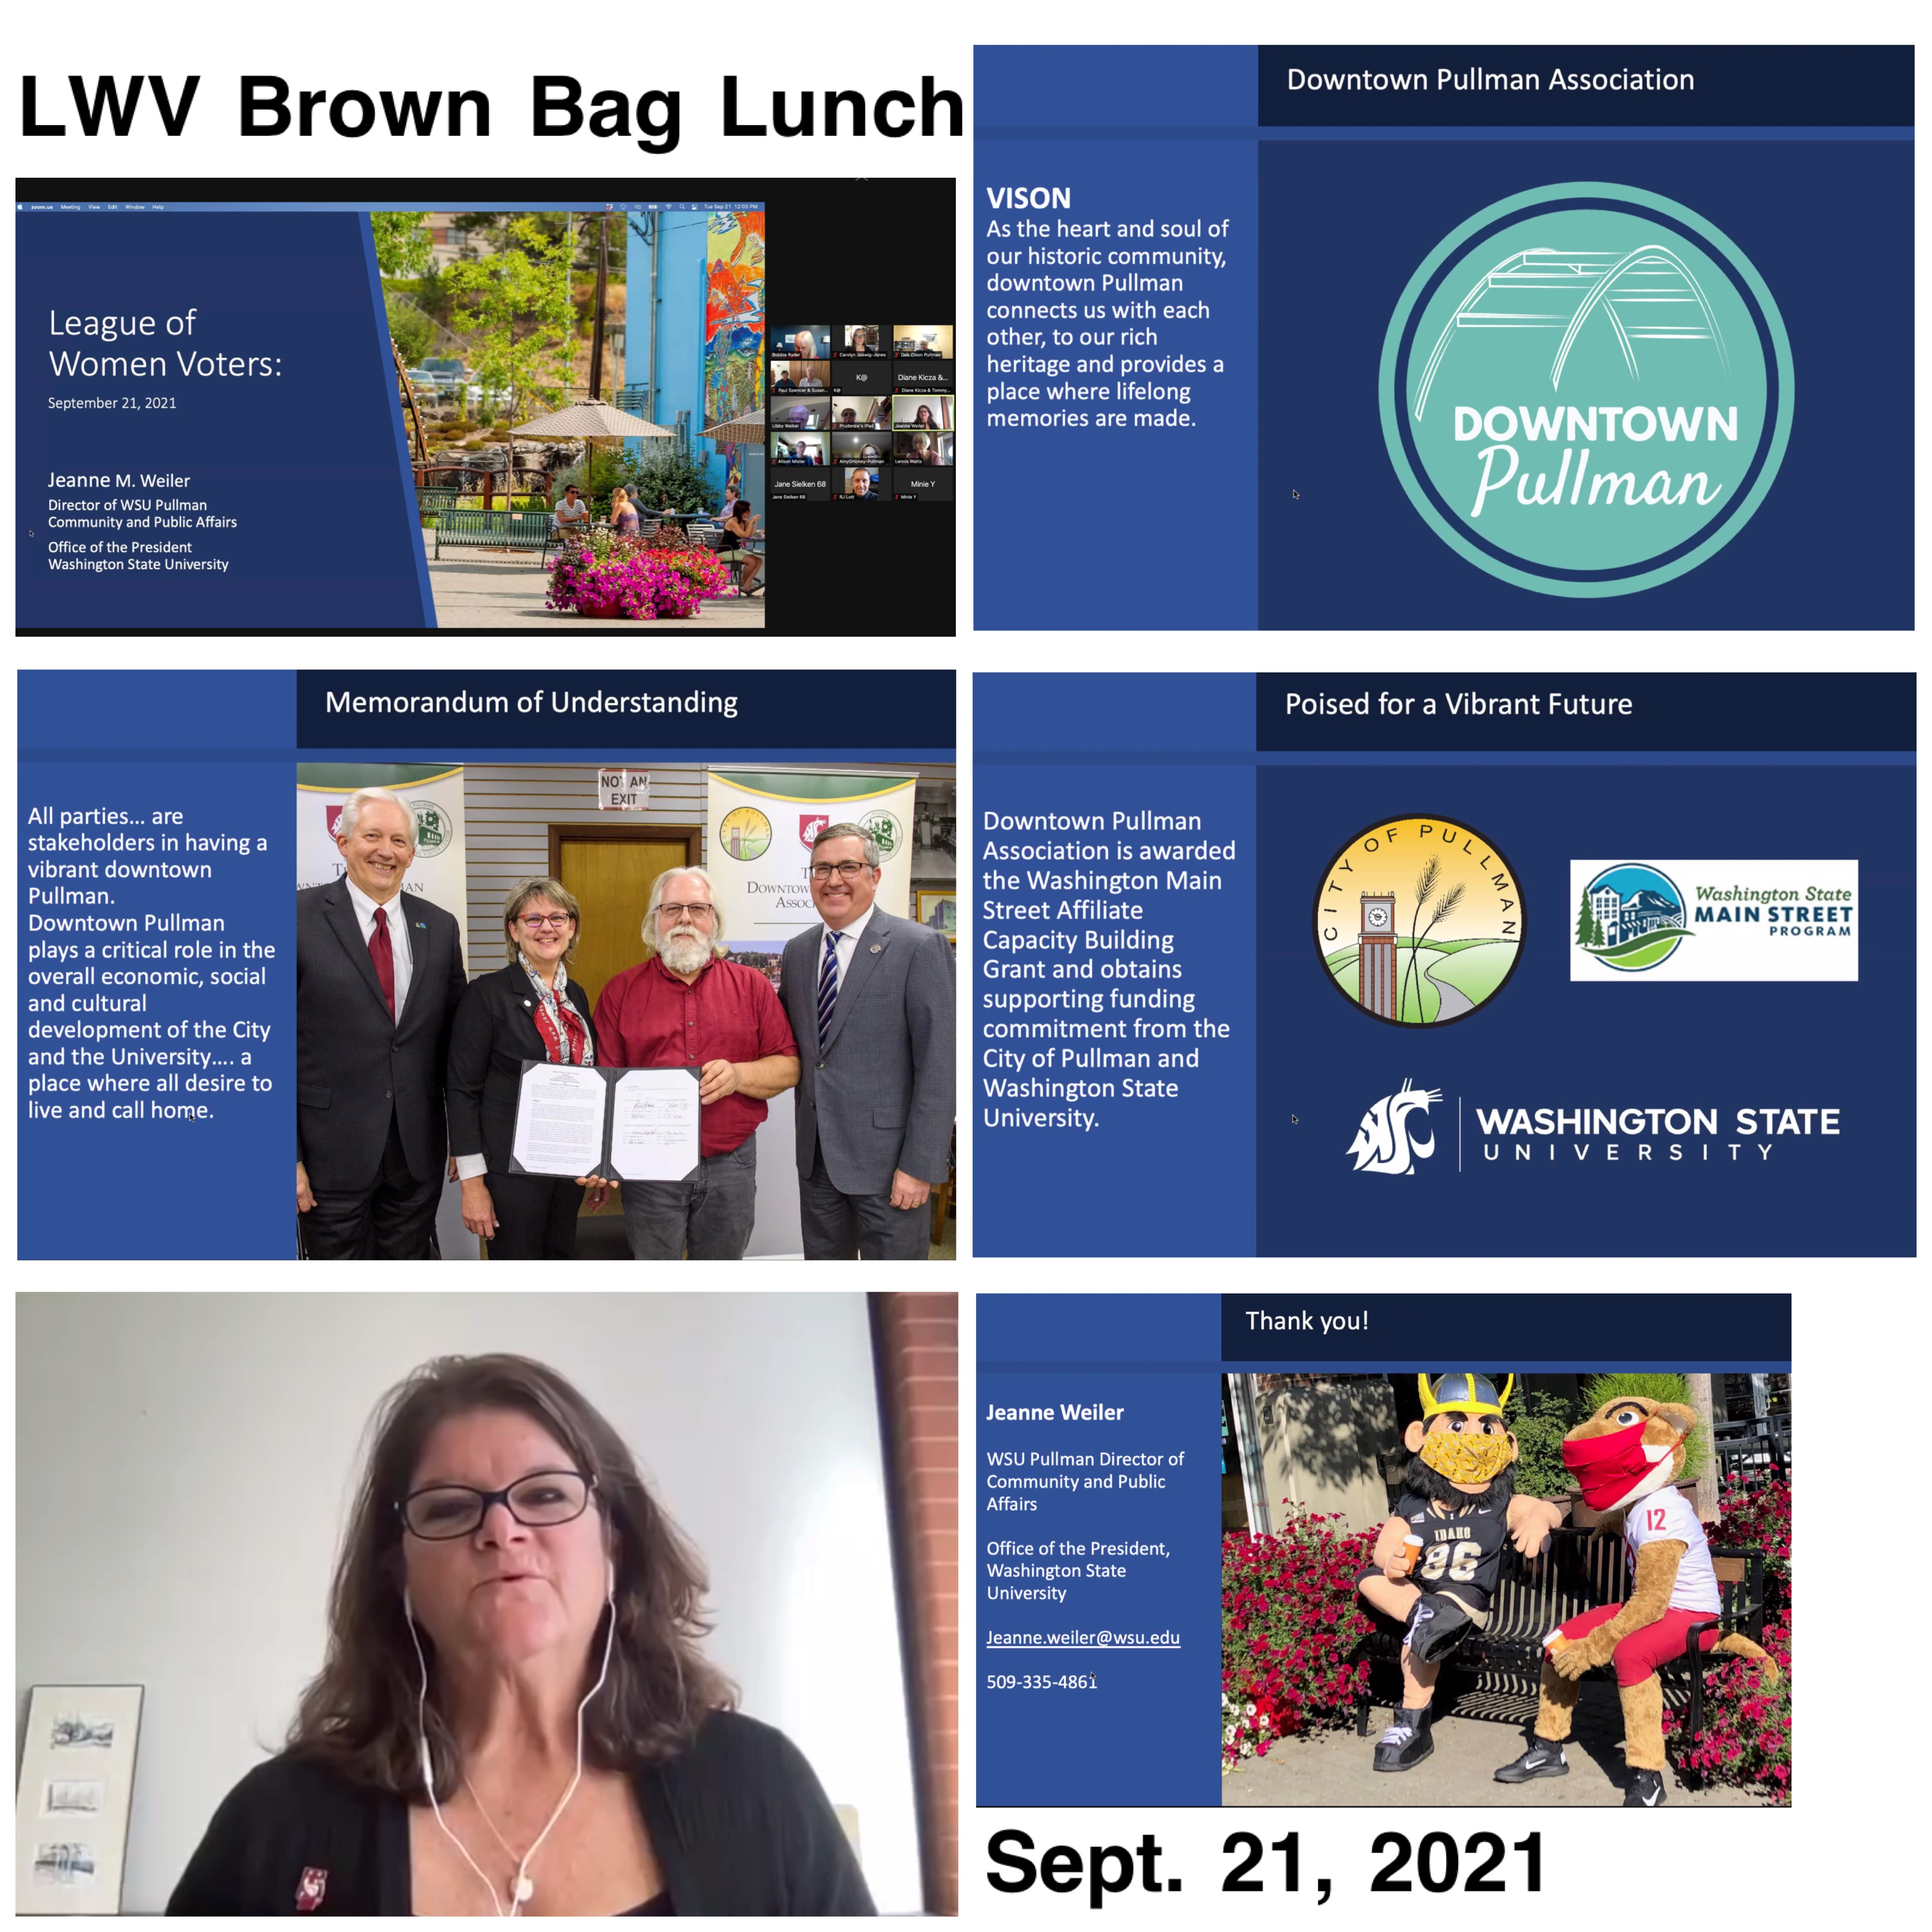 Brown Bag Lunch for Downtown Pullman Association